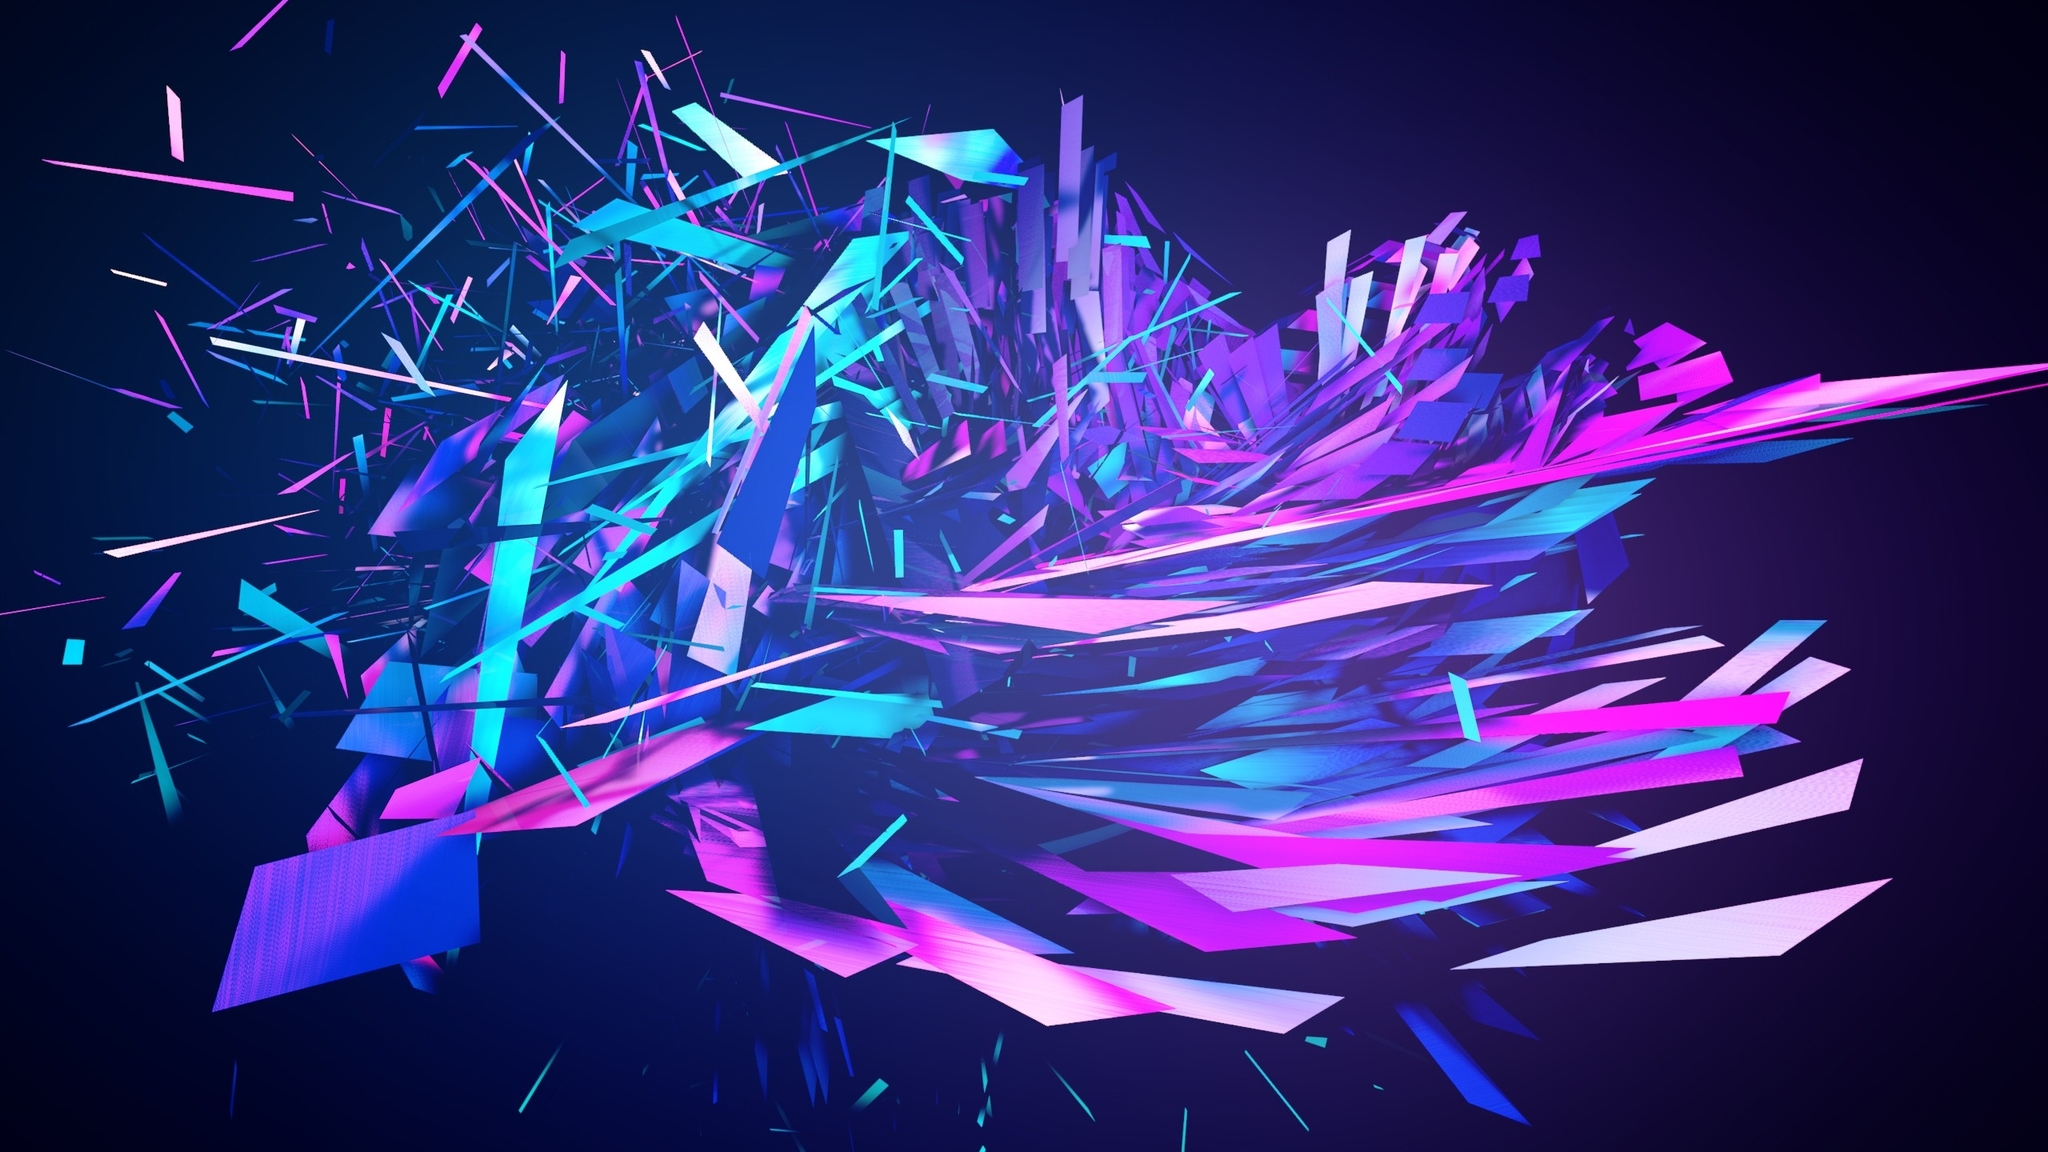 2048x1152 broken into pieces abstract 2048x1152 resolution hd 4k